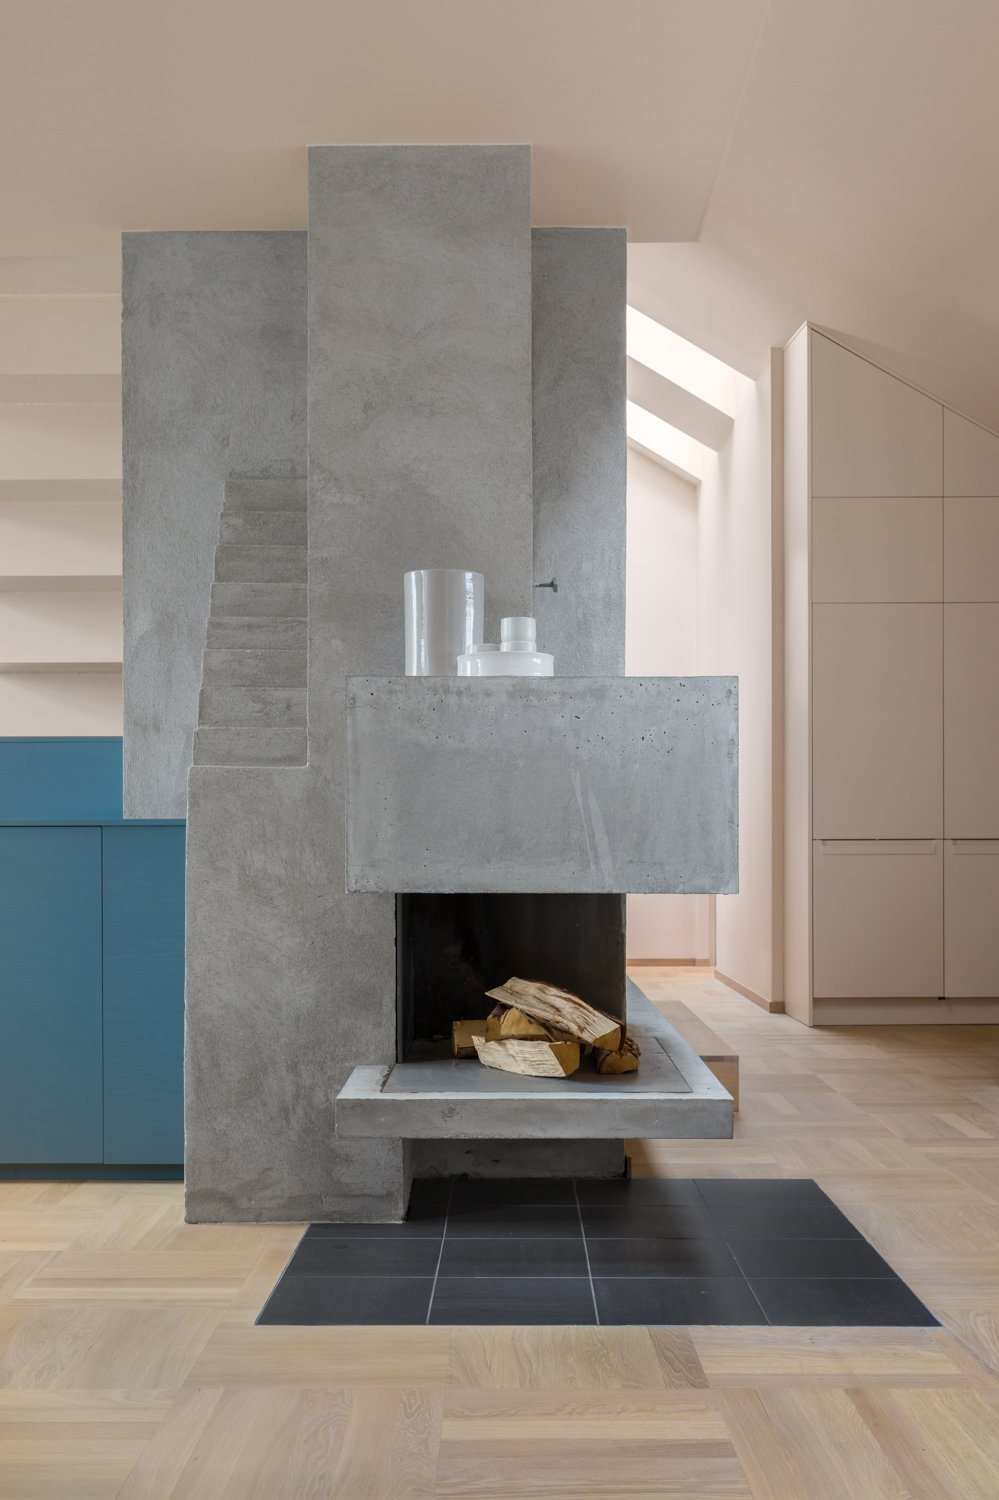 The sculptural fireplace, covered in plaster, contrasts with oak parquet floors.